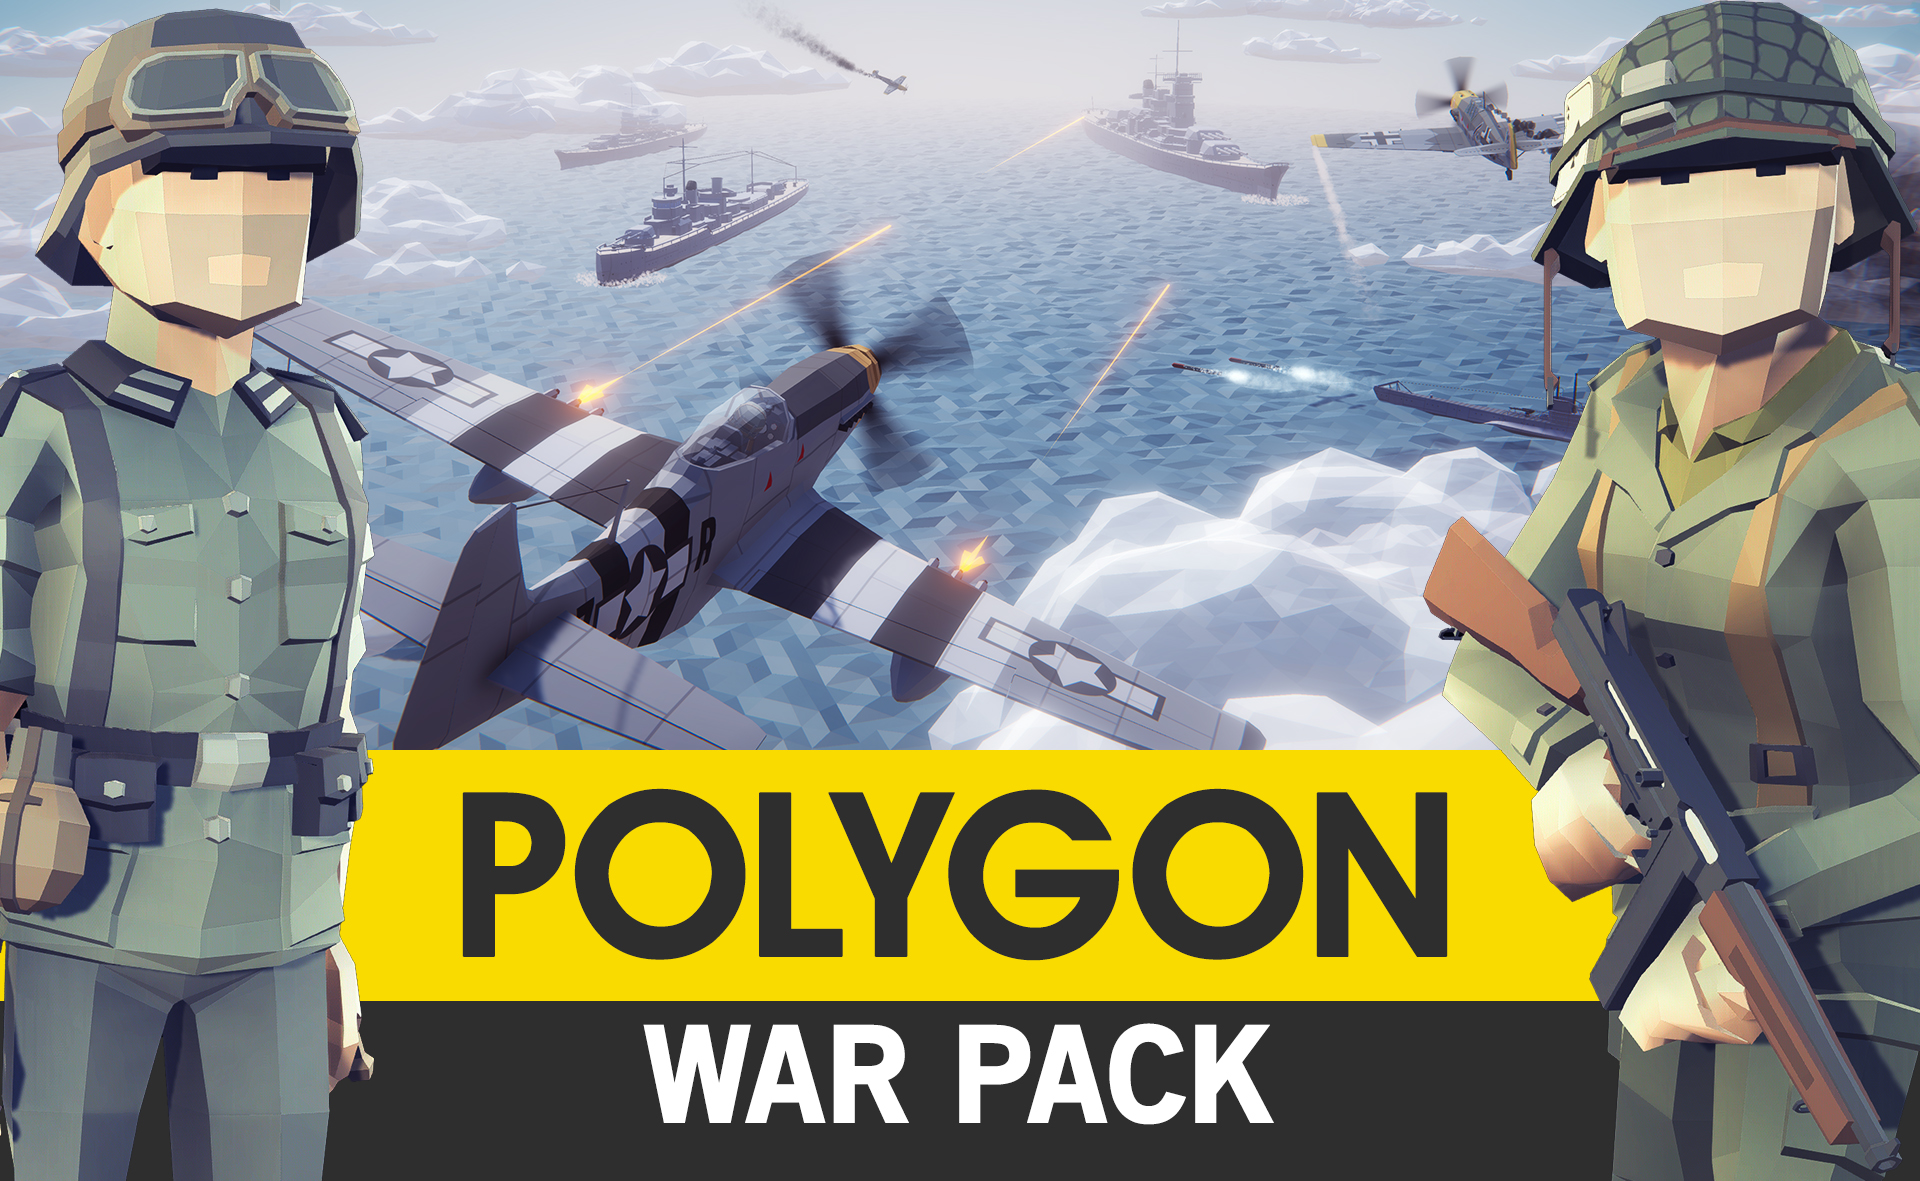 POLYGON - War